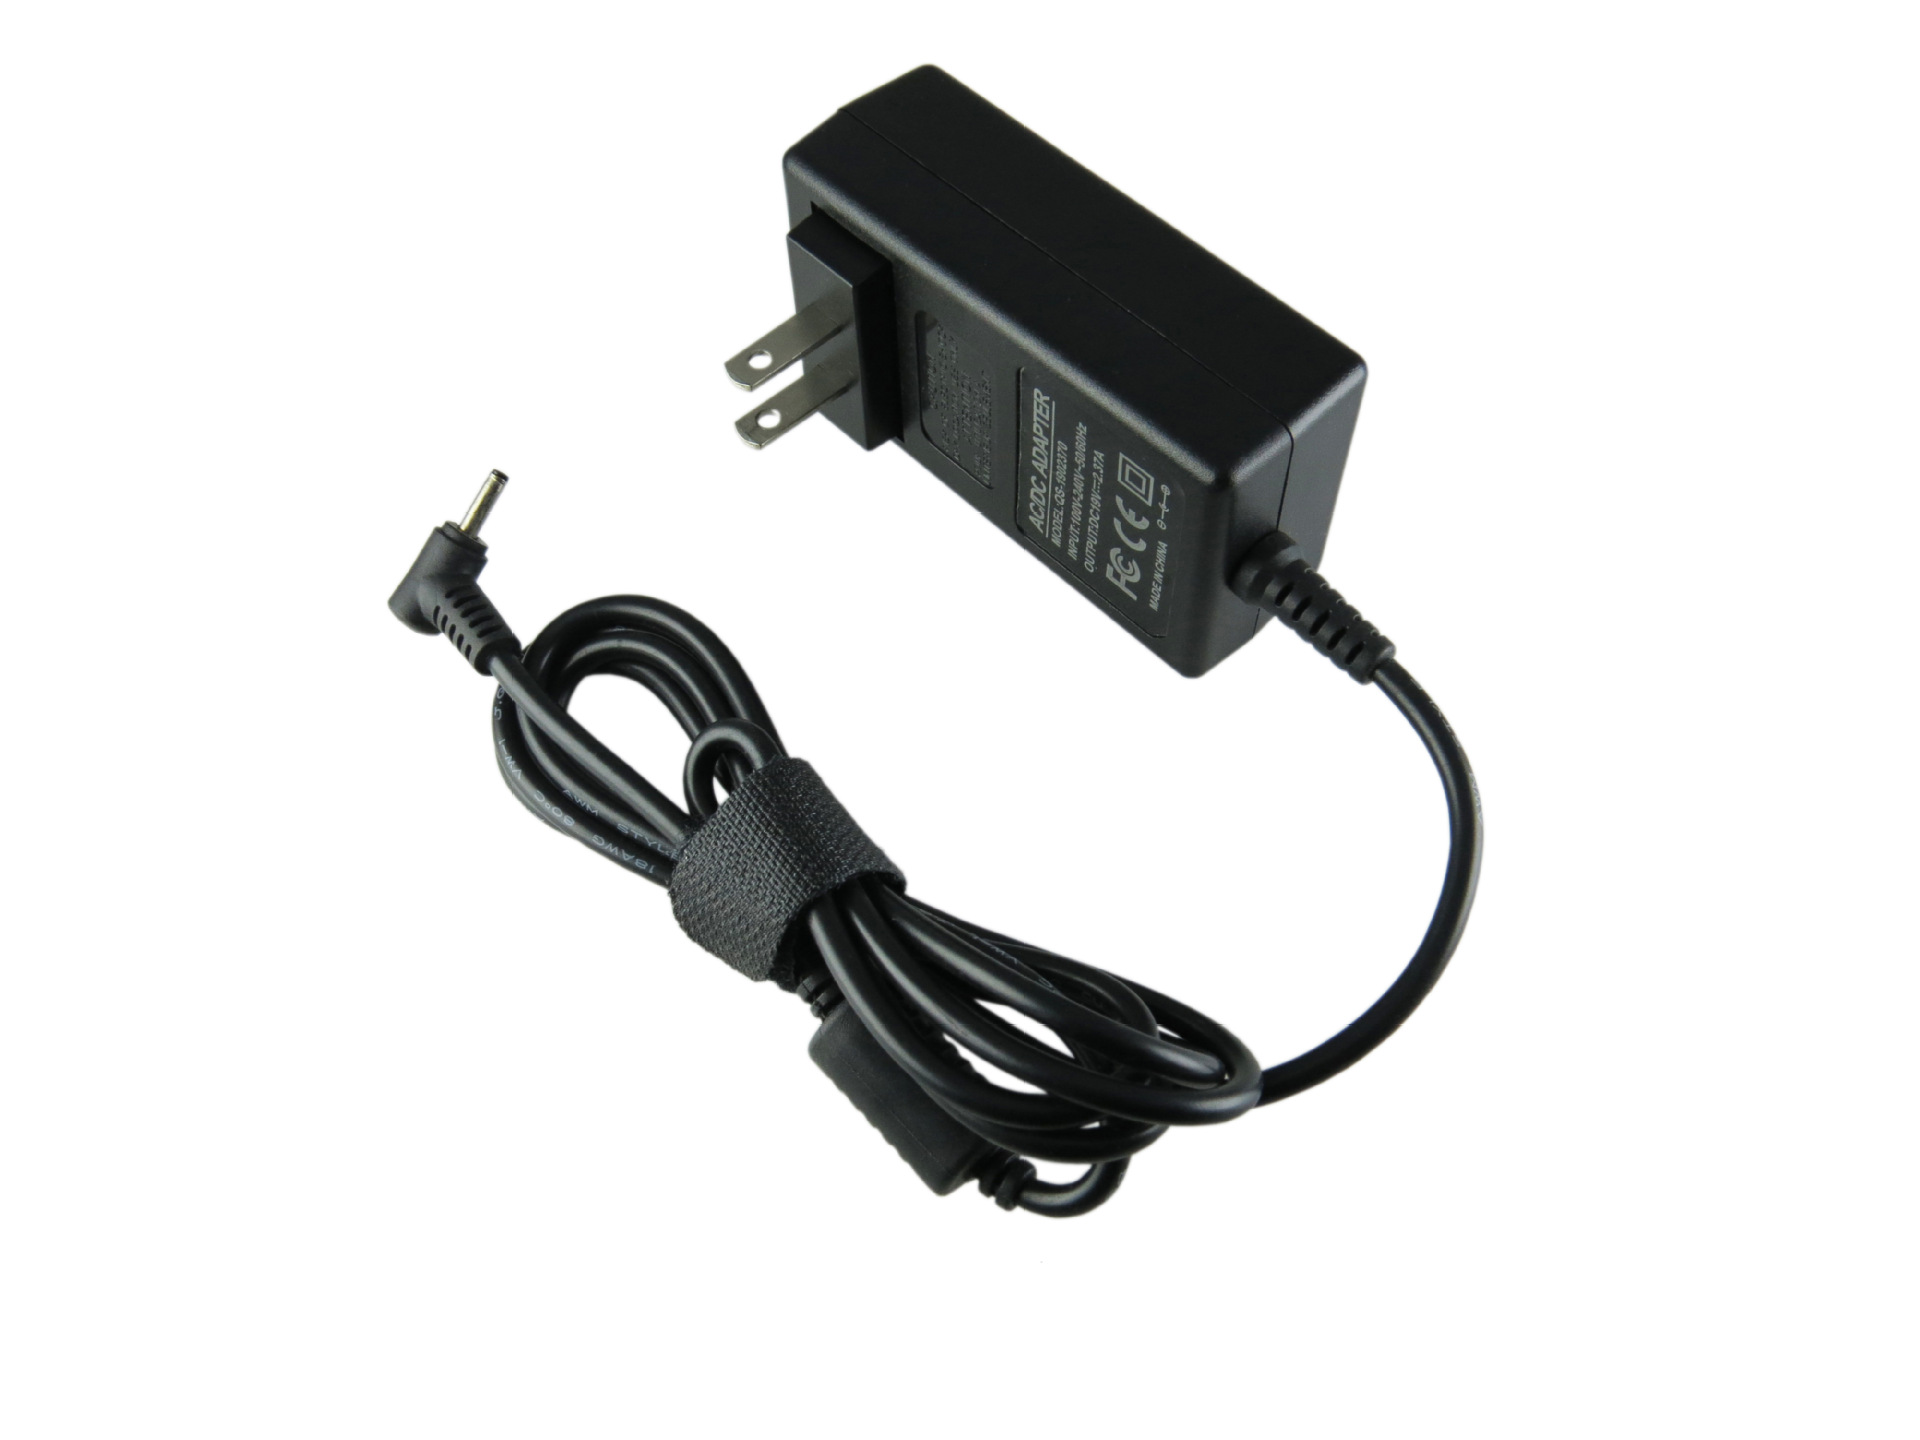 19V 1.75A 33W Laptop Ac Power Adapter Charger For Asus Vivobook S200E X201E X202E Exa1206Ch F201E Q200E Us/Eu Plug все цены